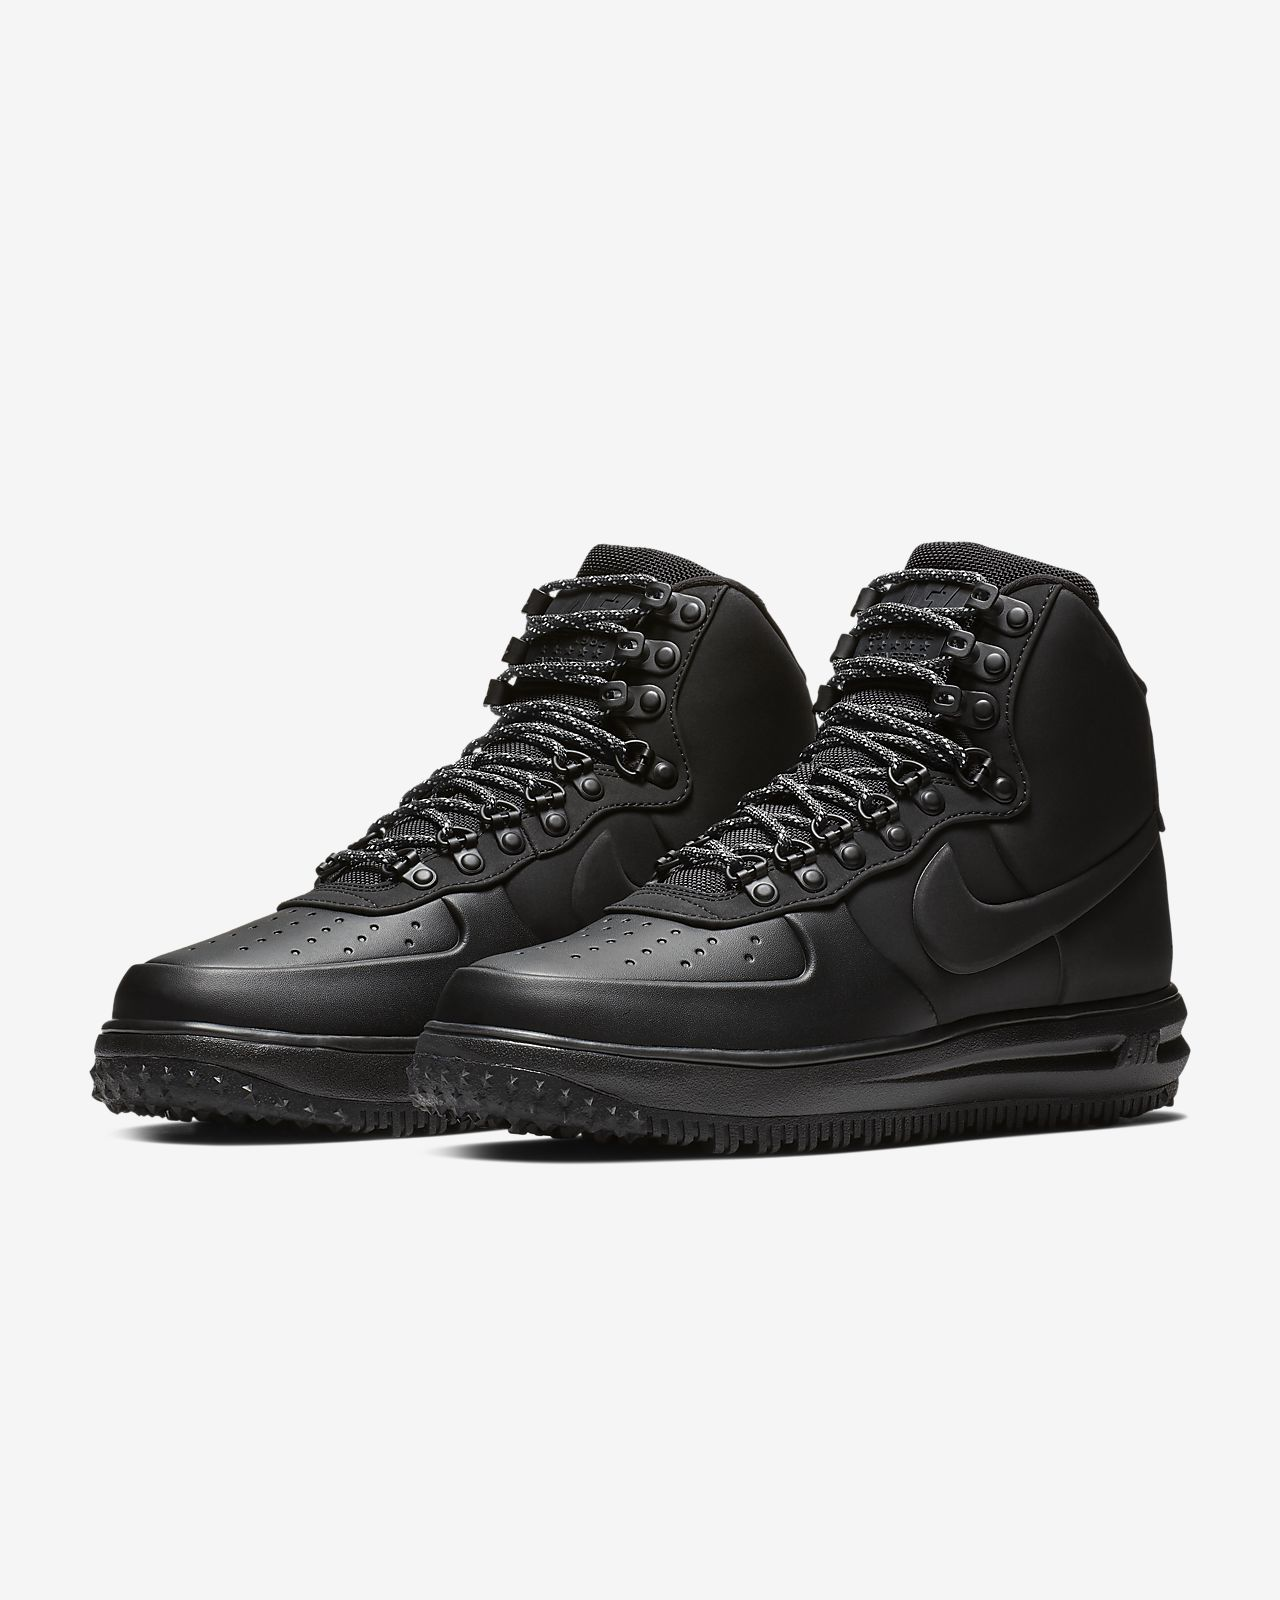 950bc55dbc593 Nike Lunar Force 1 '18 Men's Duckboot. Nike.com